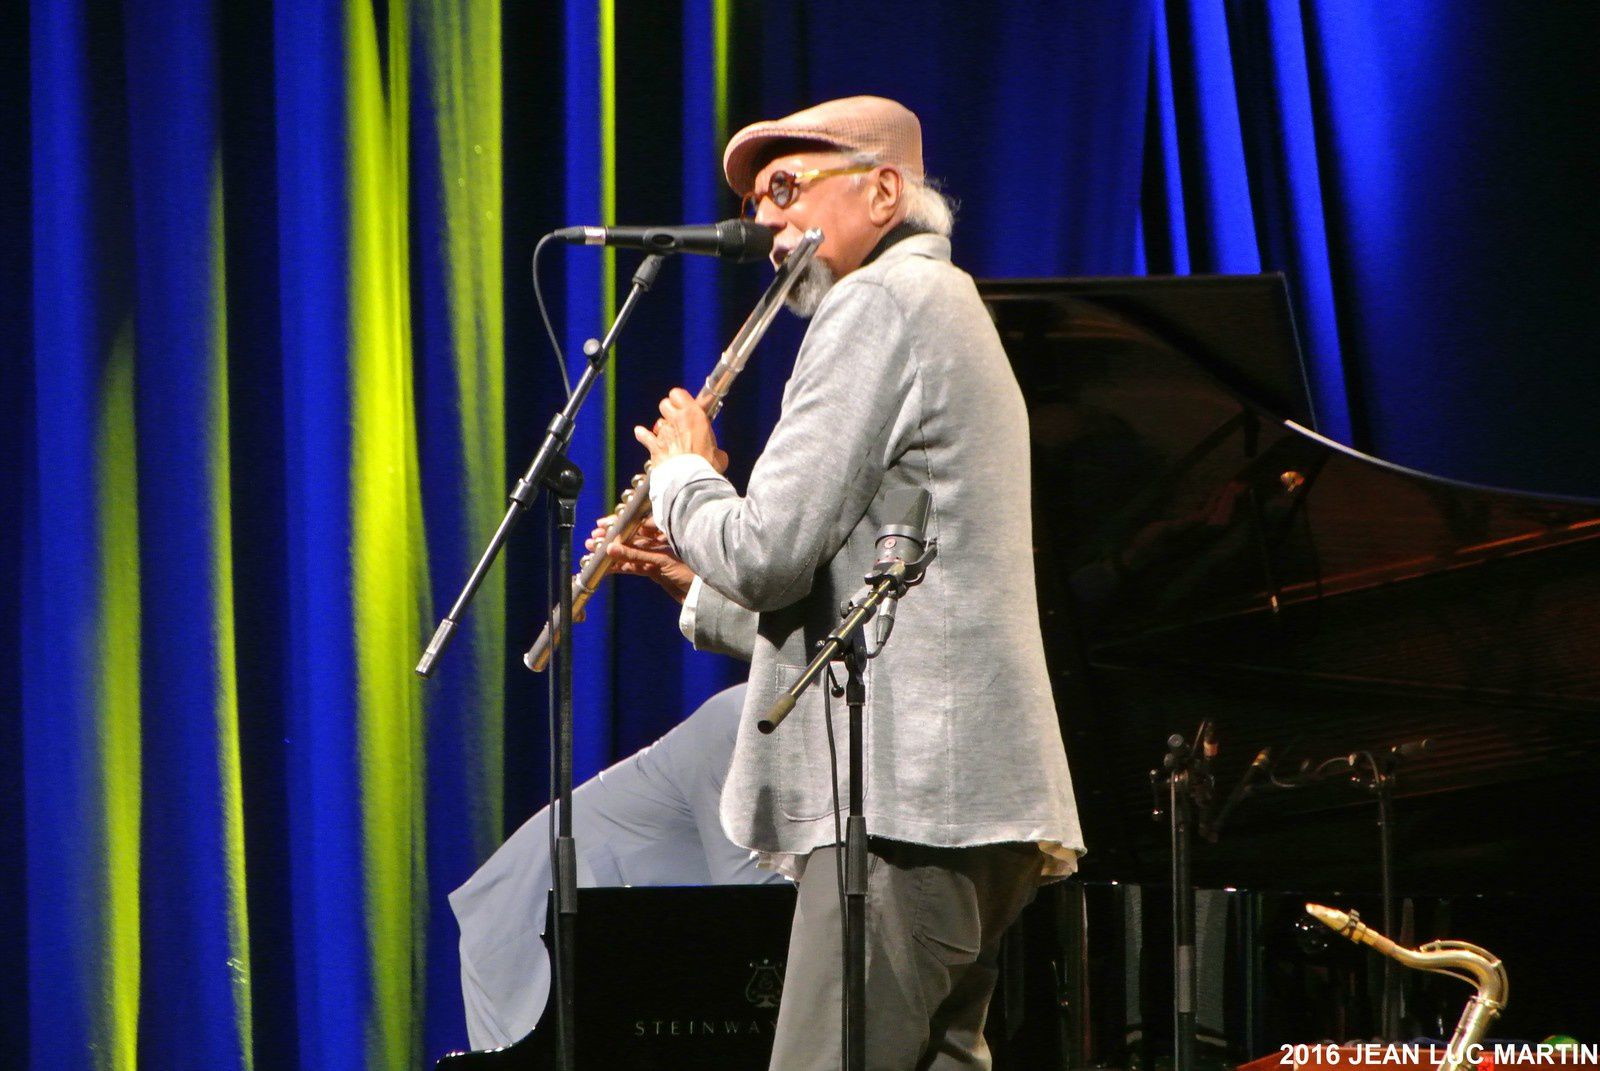 CHARLES LLOYD ON THE HALL OF FAME OF MEMPHIS